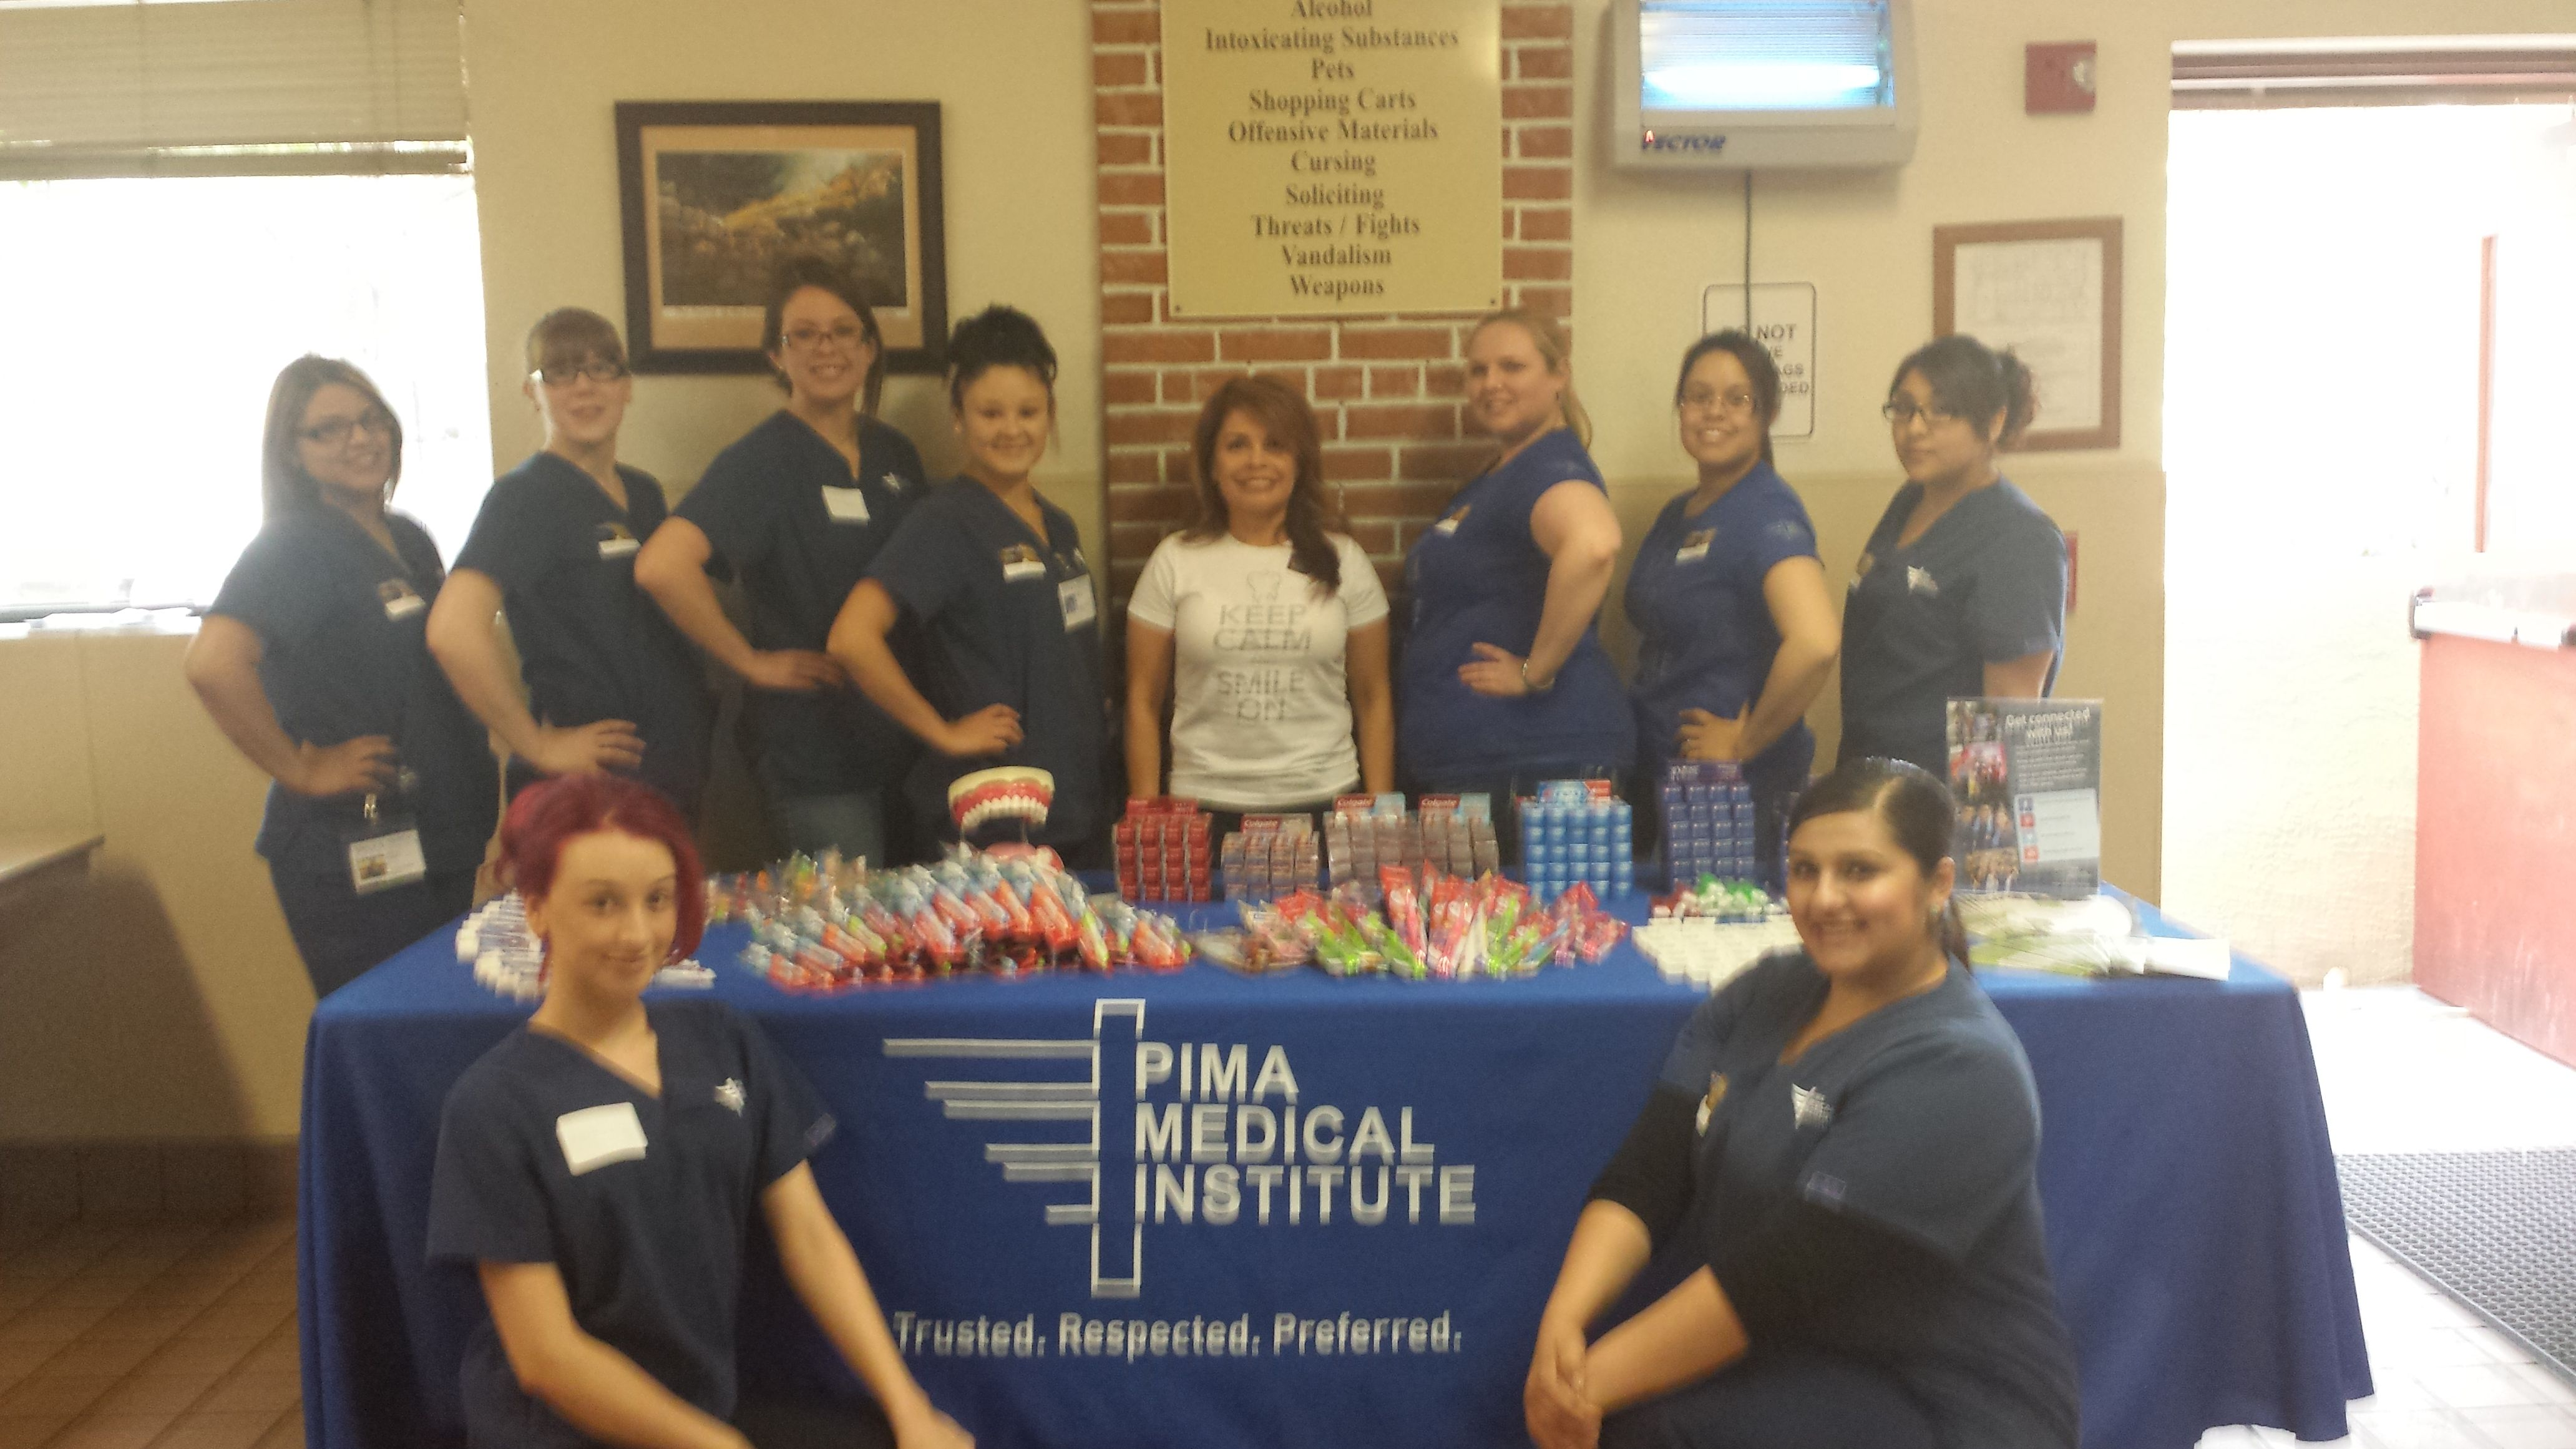 Dental assistant and medical assistant students from the